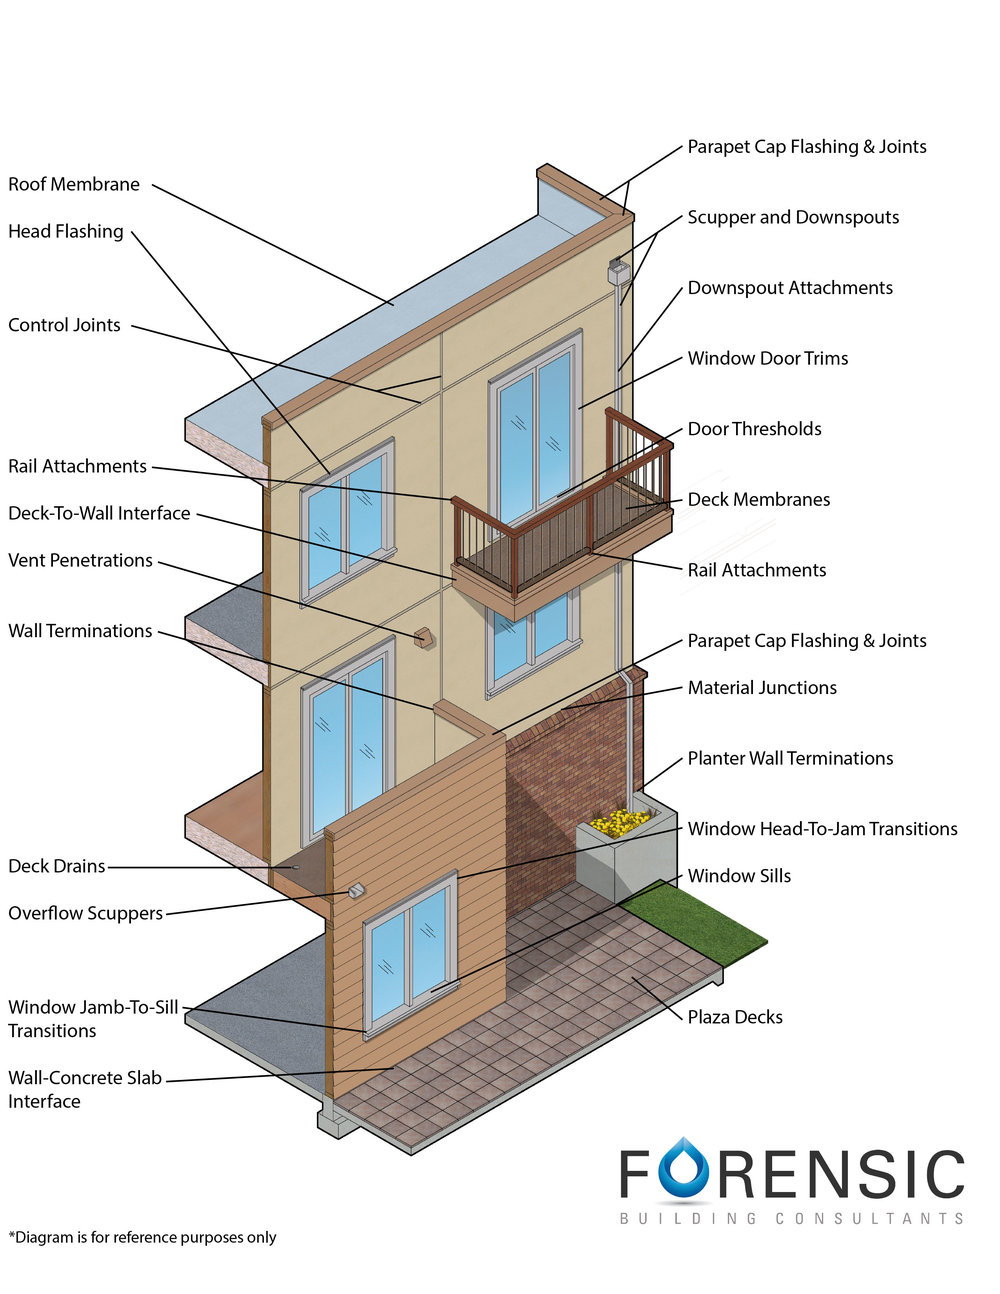 Building Enclosure Anatomy -